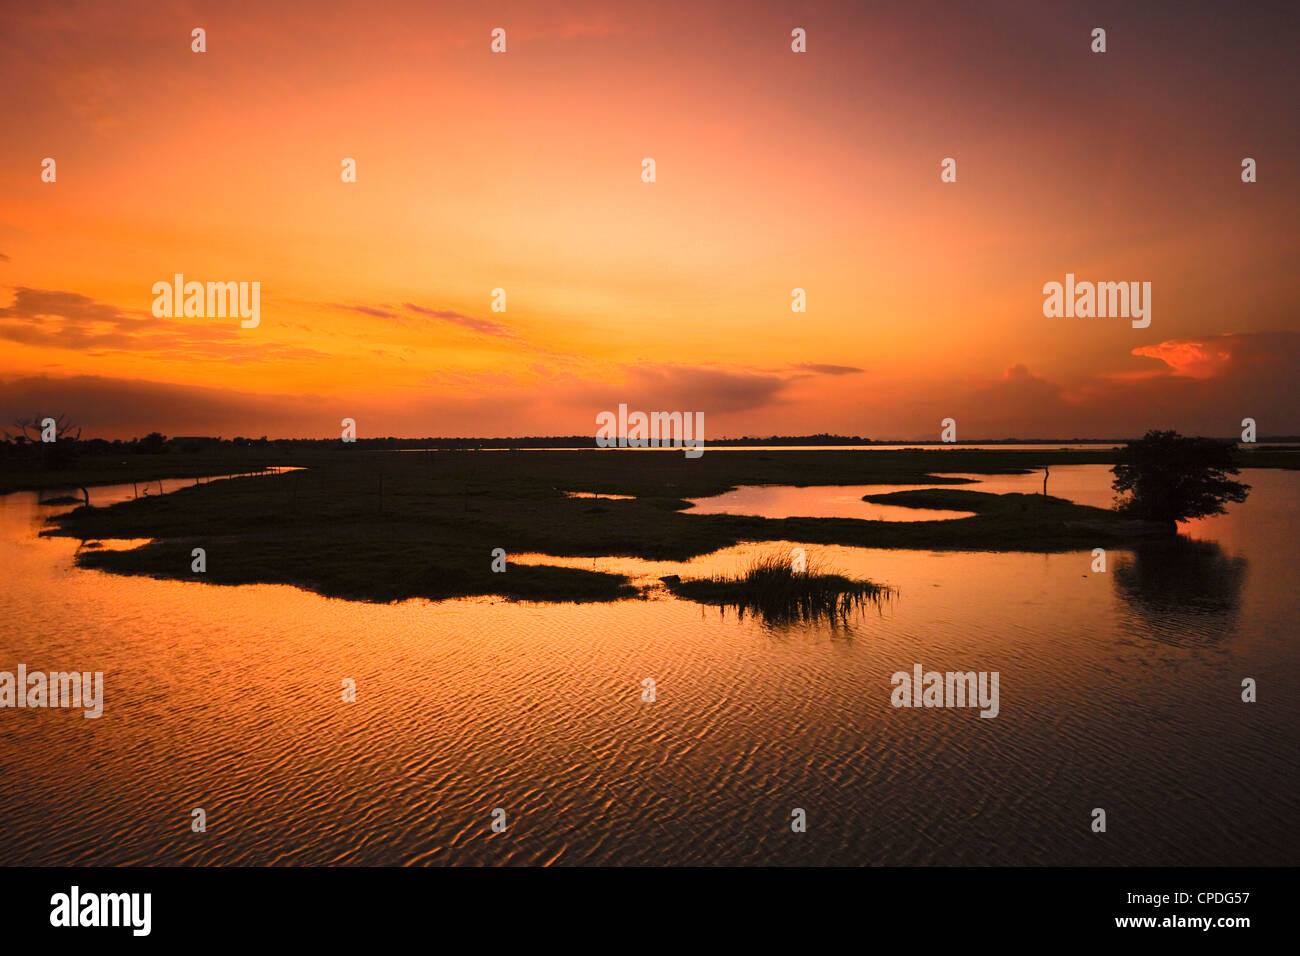 Arugam Lagoon at sunset, a good wildlife area, Pottuvil, Arugam Bay, Eastern Province, Sri Lanka, Asia - Stock Image